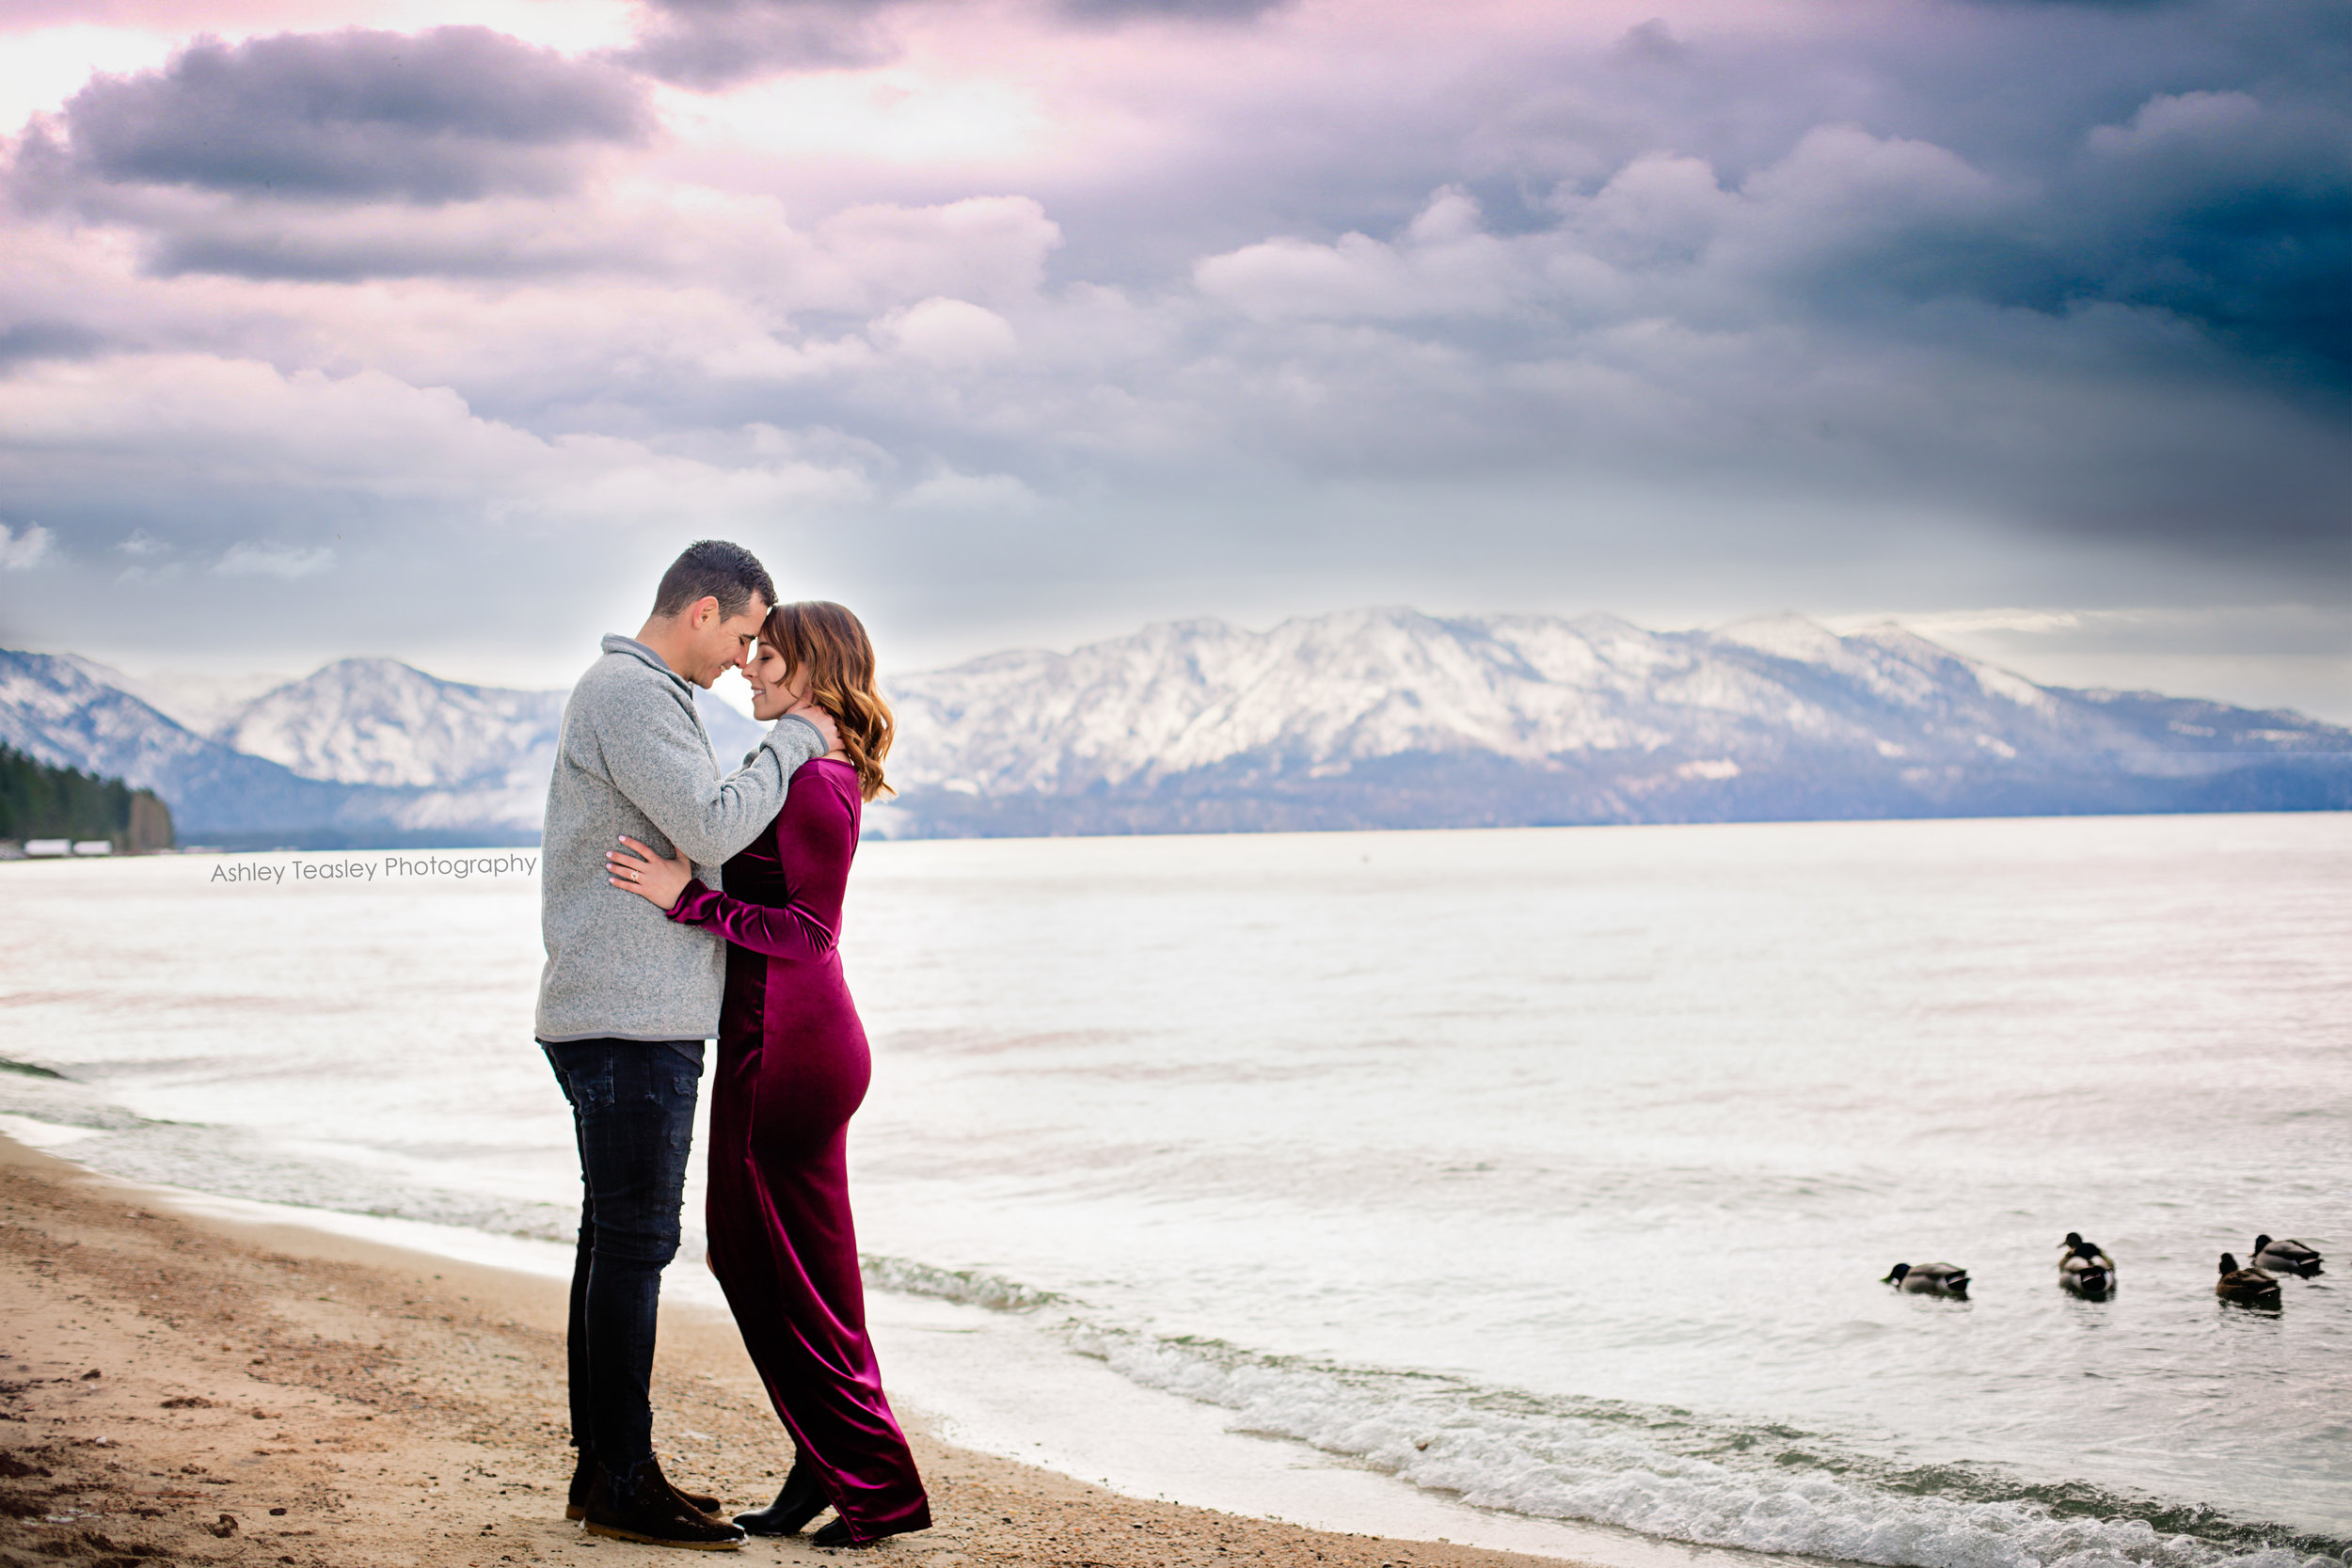 Britni & Dennis - Edgewood at Tahoe - Lake Tahoe &  Sacramento Wedding Photographer - Ashley Teasley Photography-.JPG